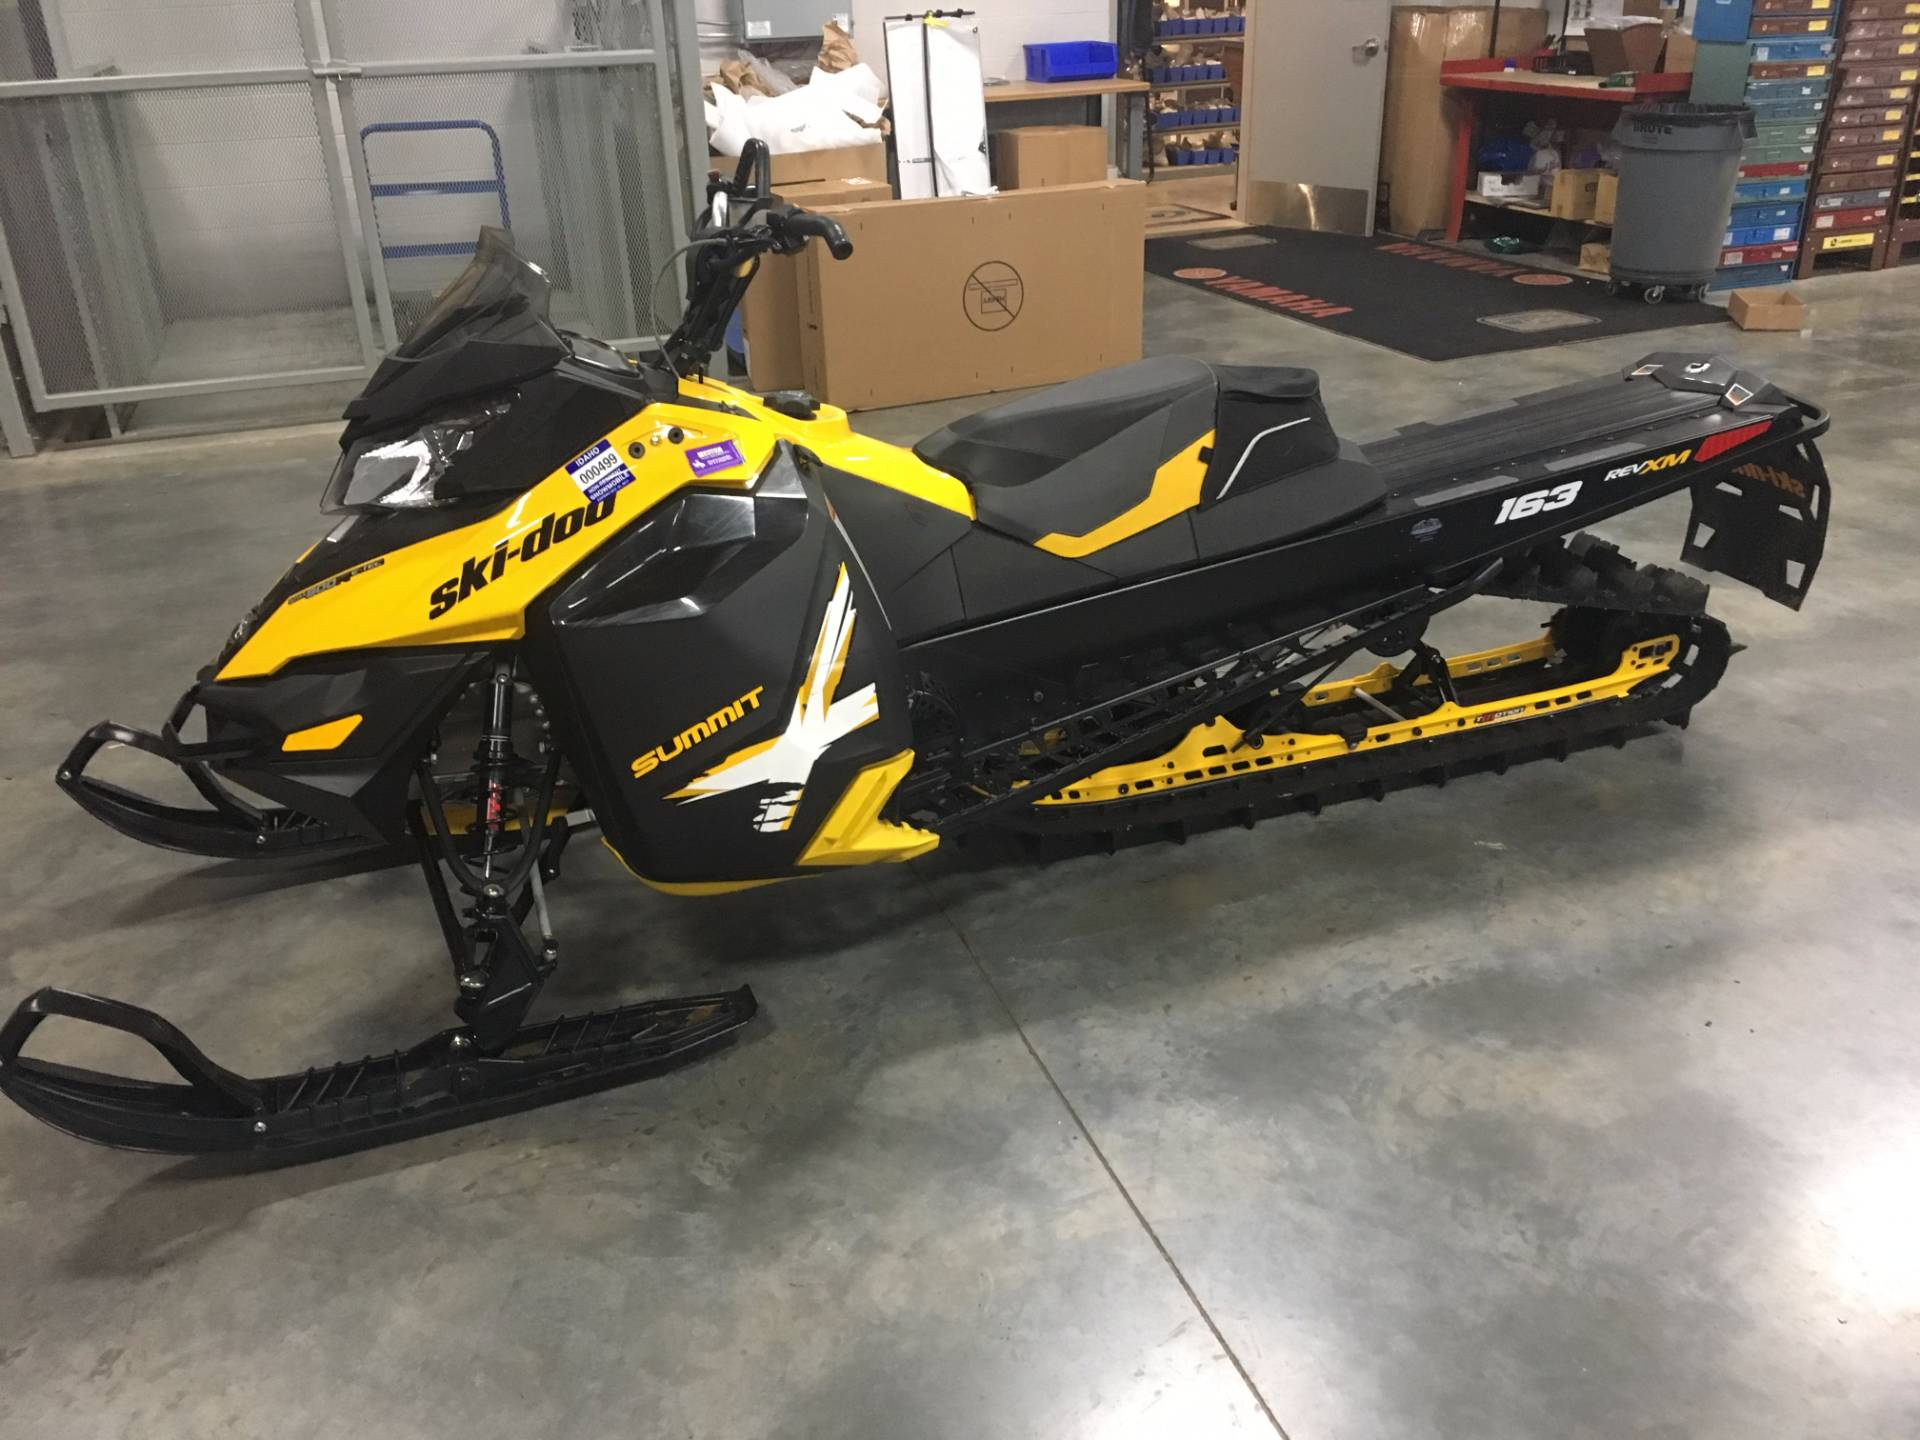 "2013 Ski-Doo Summit X 800 163"" in Kamas, Utah"